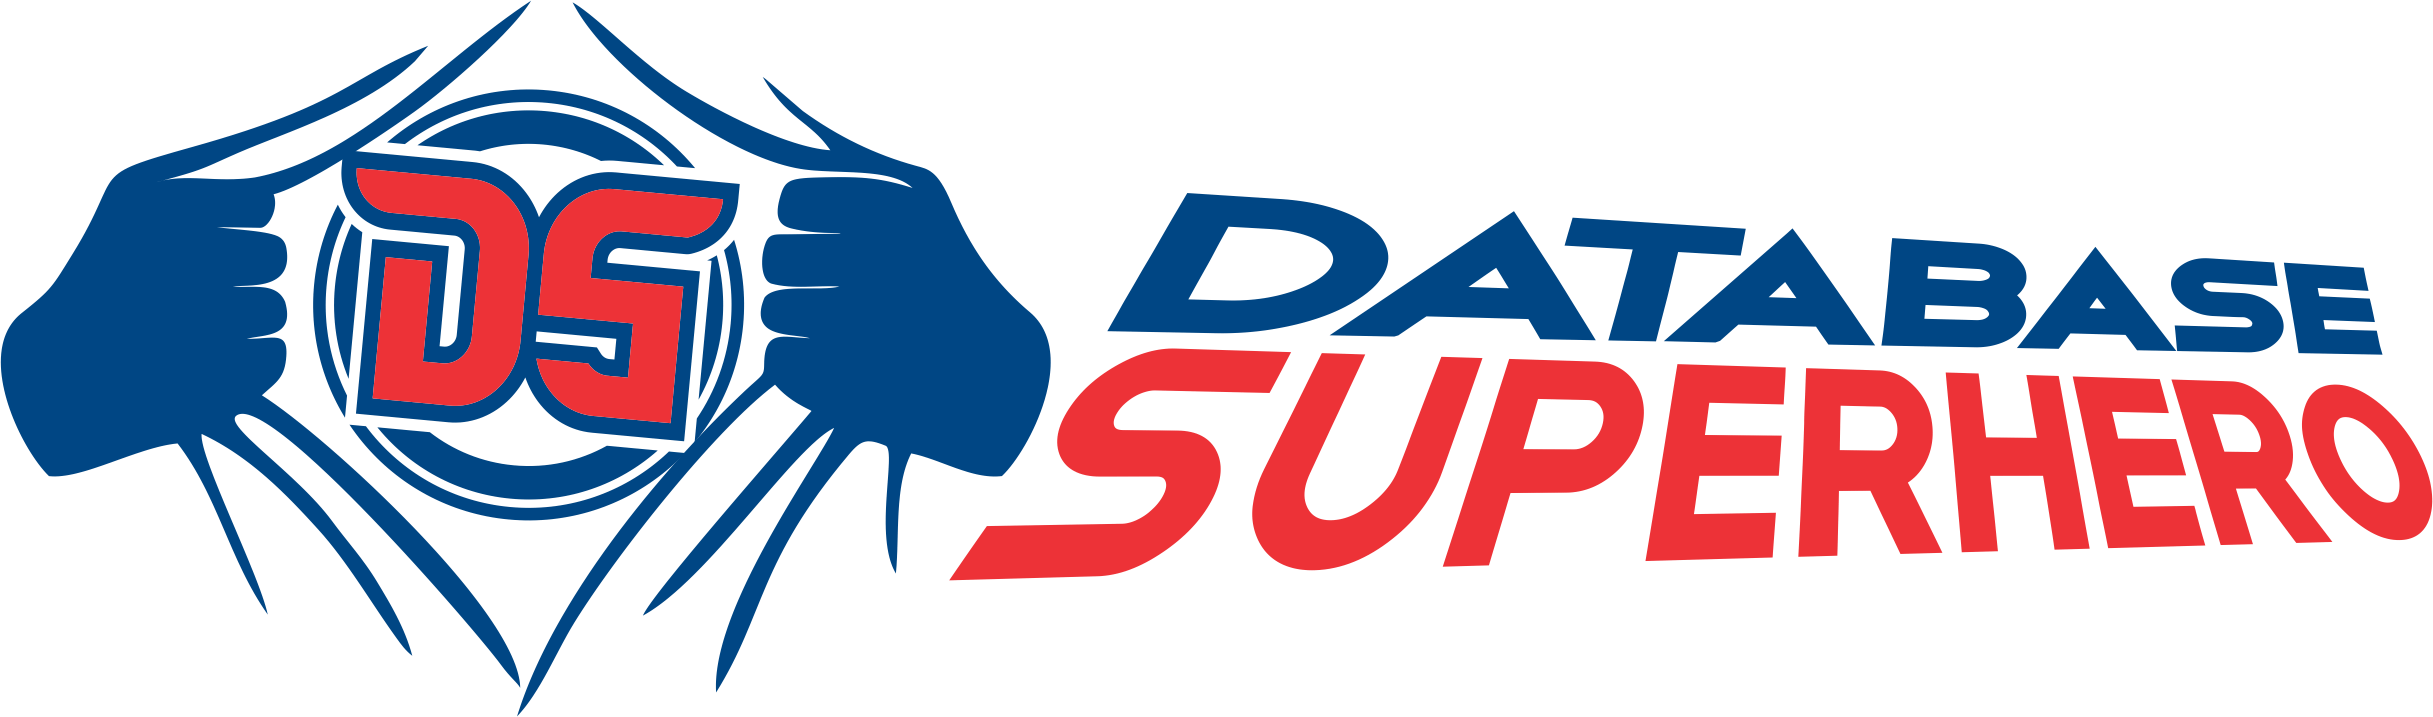 Database Superhero